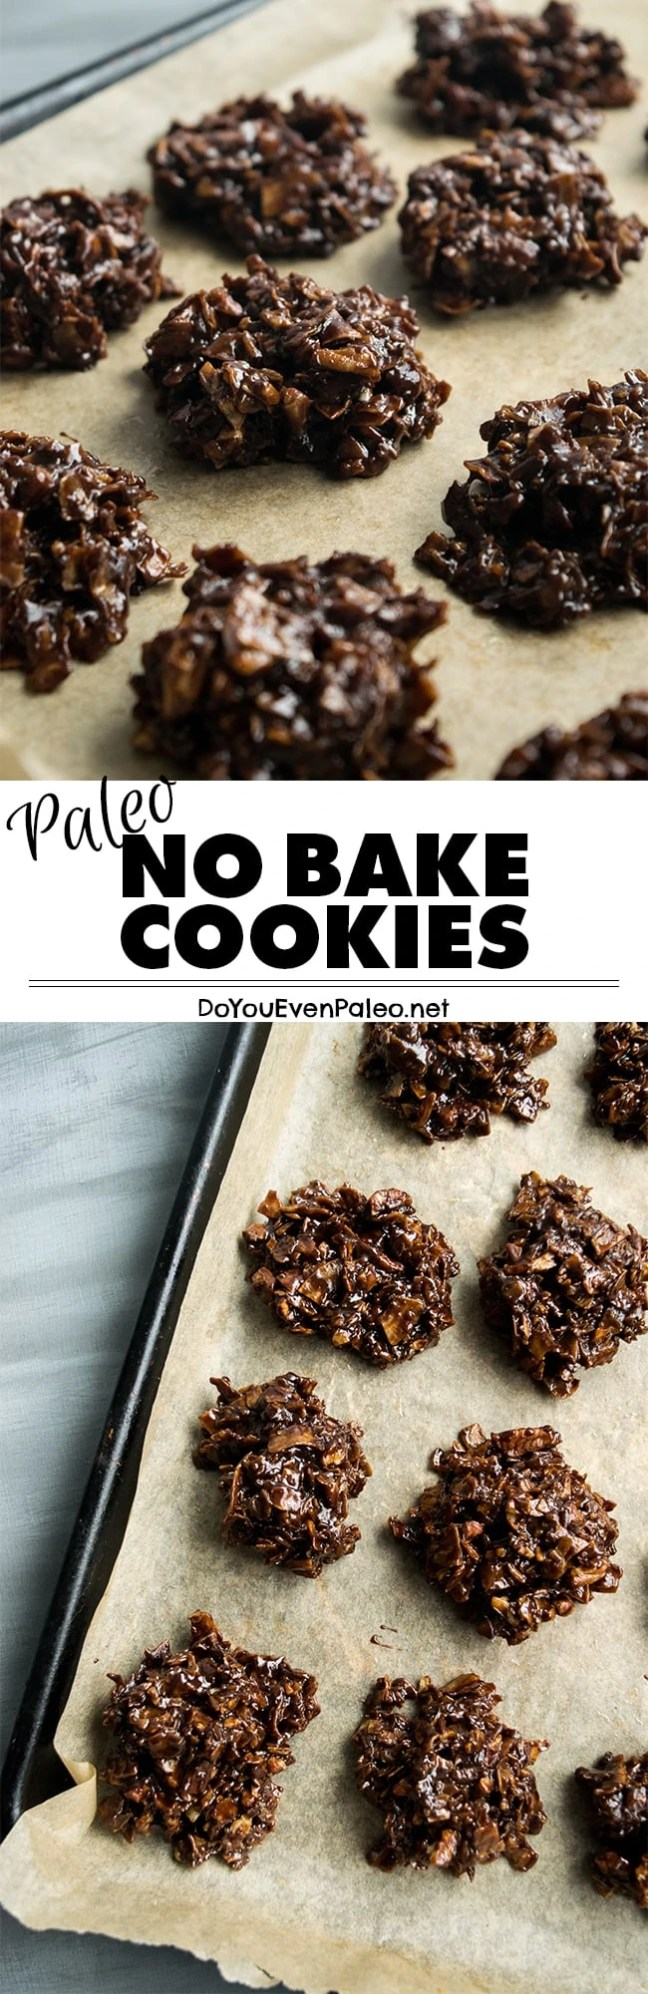 Paleo No Bake Cookies - these classic cookies are made entirely on the stovetop. Chocolatey and simple! | DoYouEvenPaleo.net